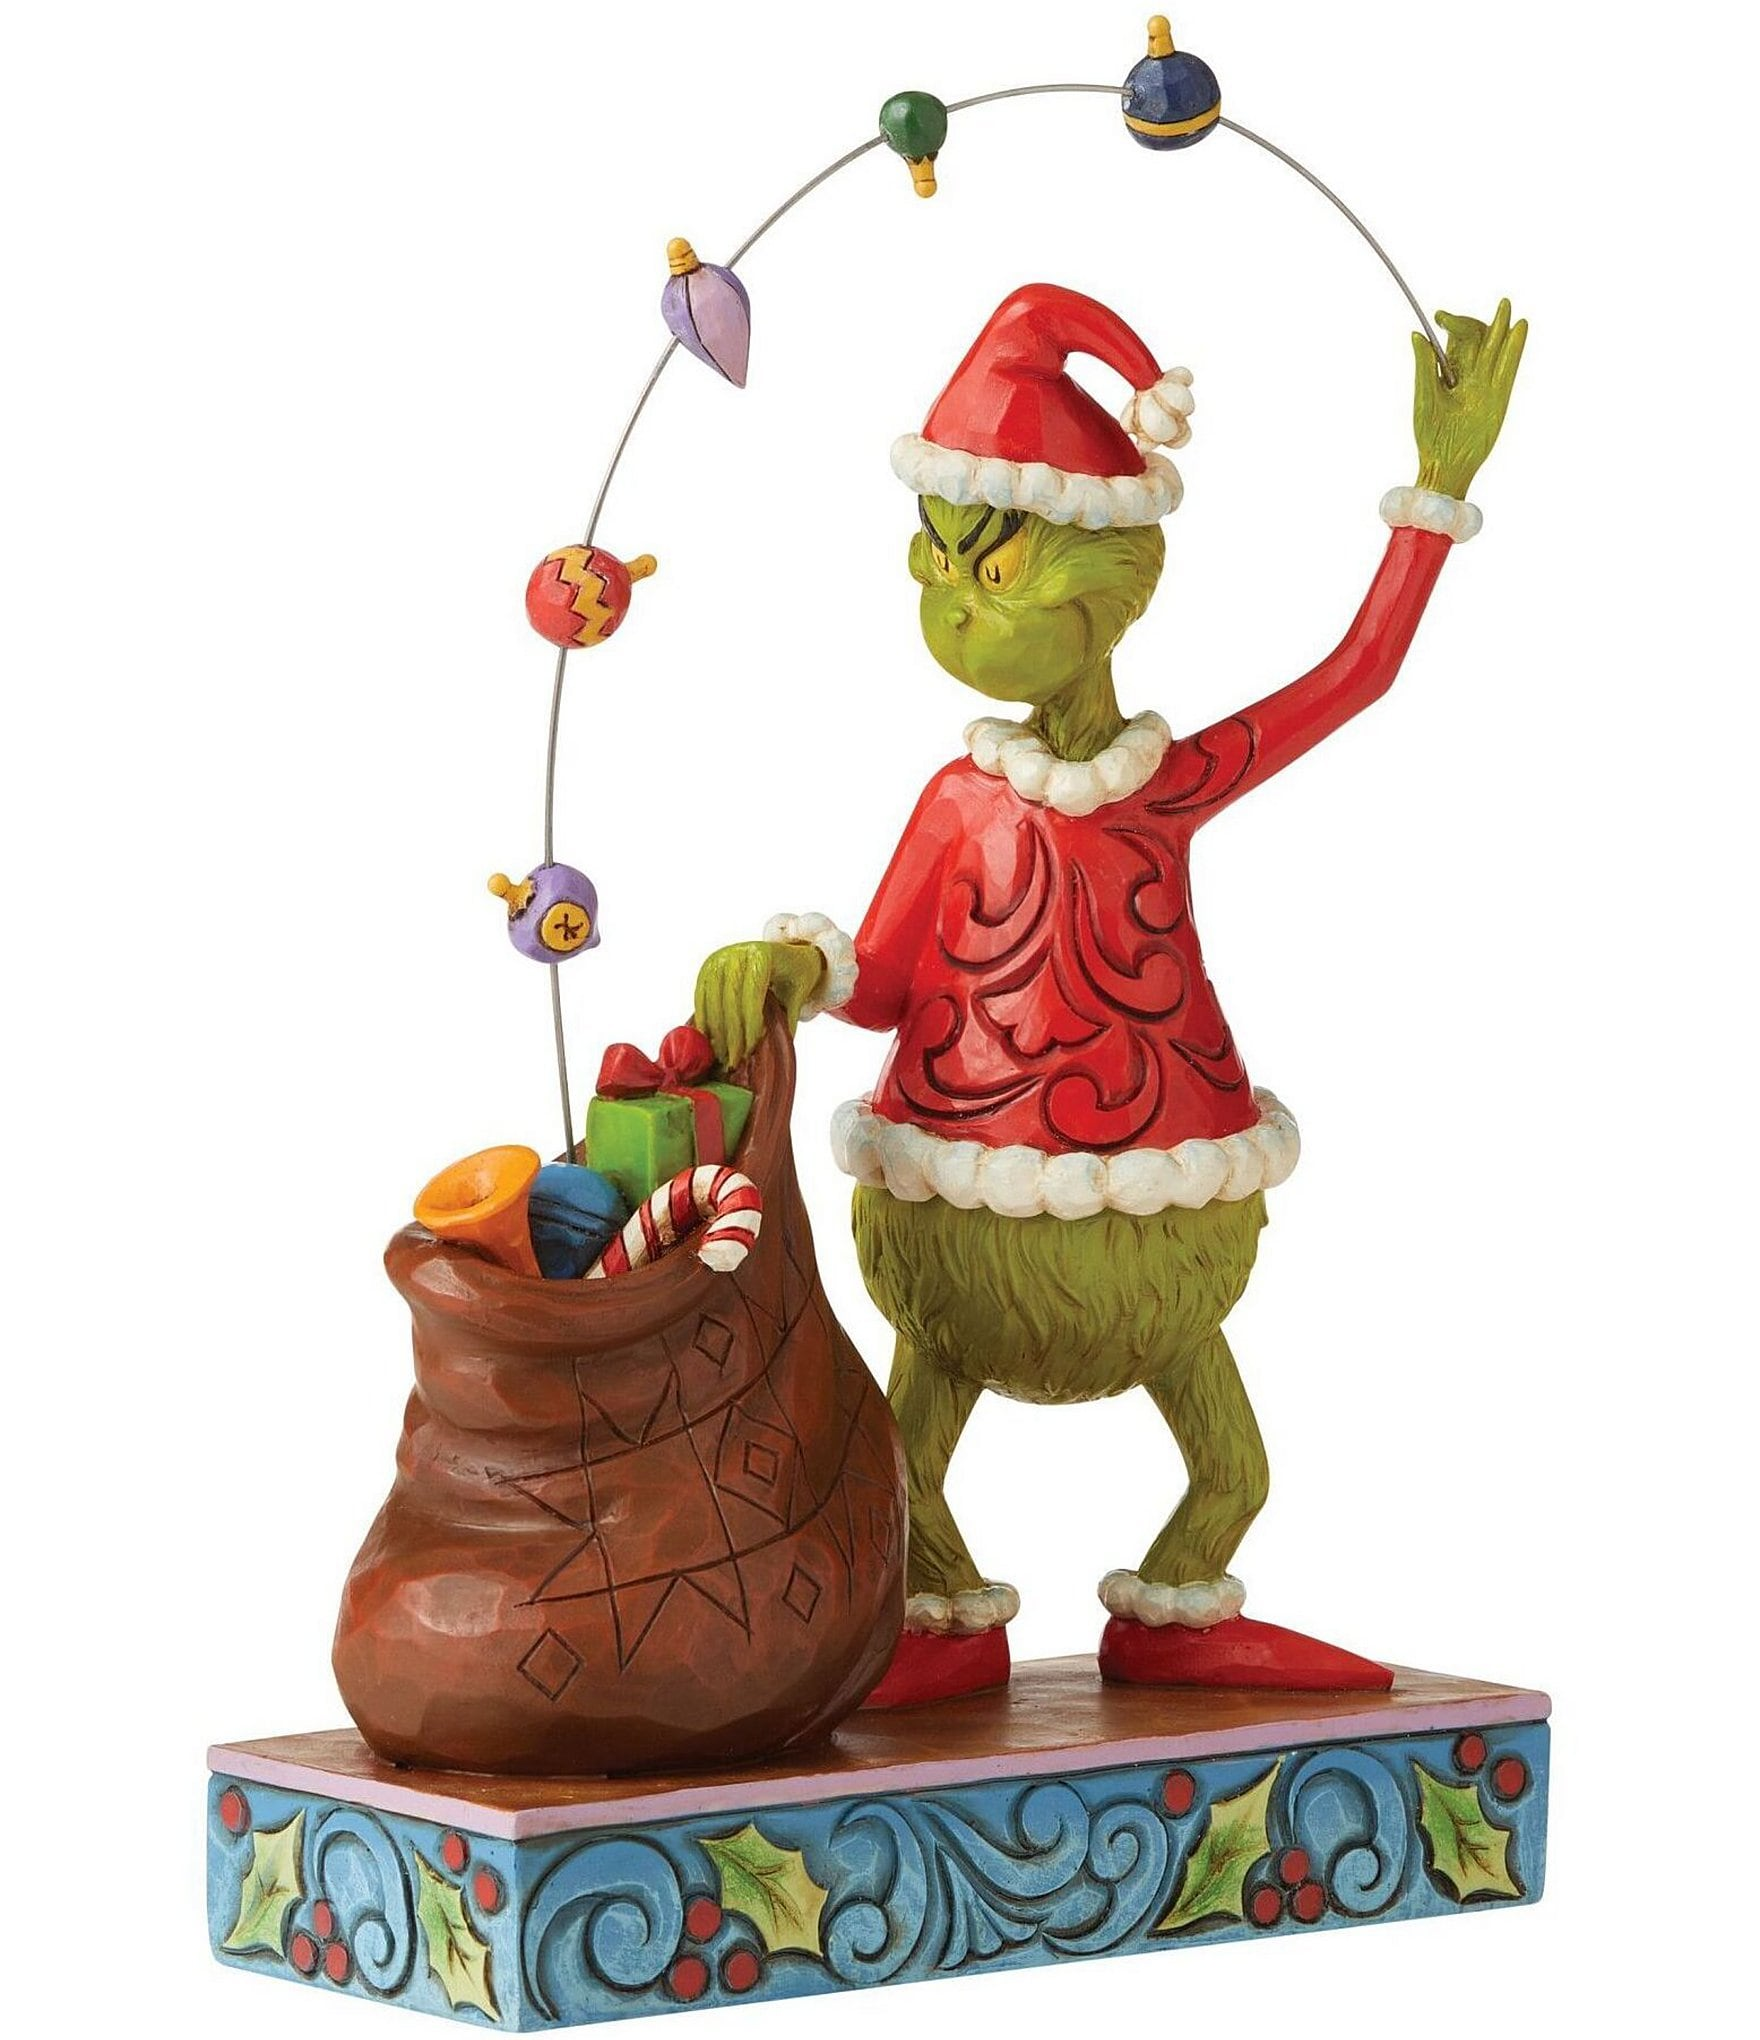 Jim Shore The Grinch Collection Grinch Juggling Ornament Into Open Bag Figurine Dillard S